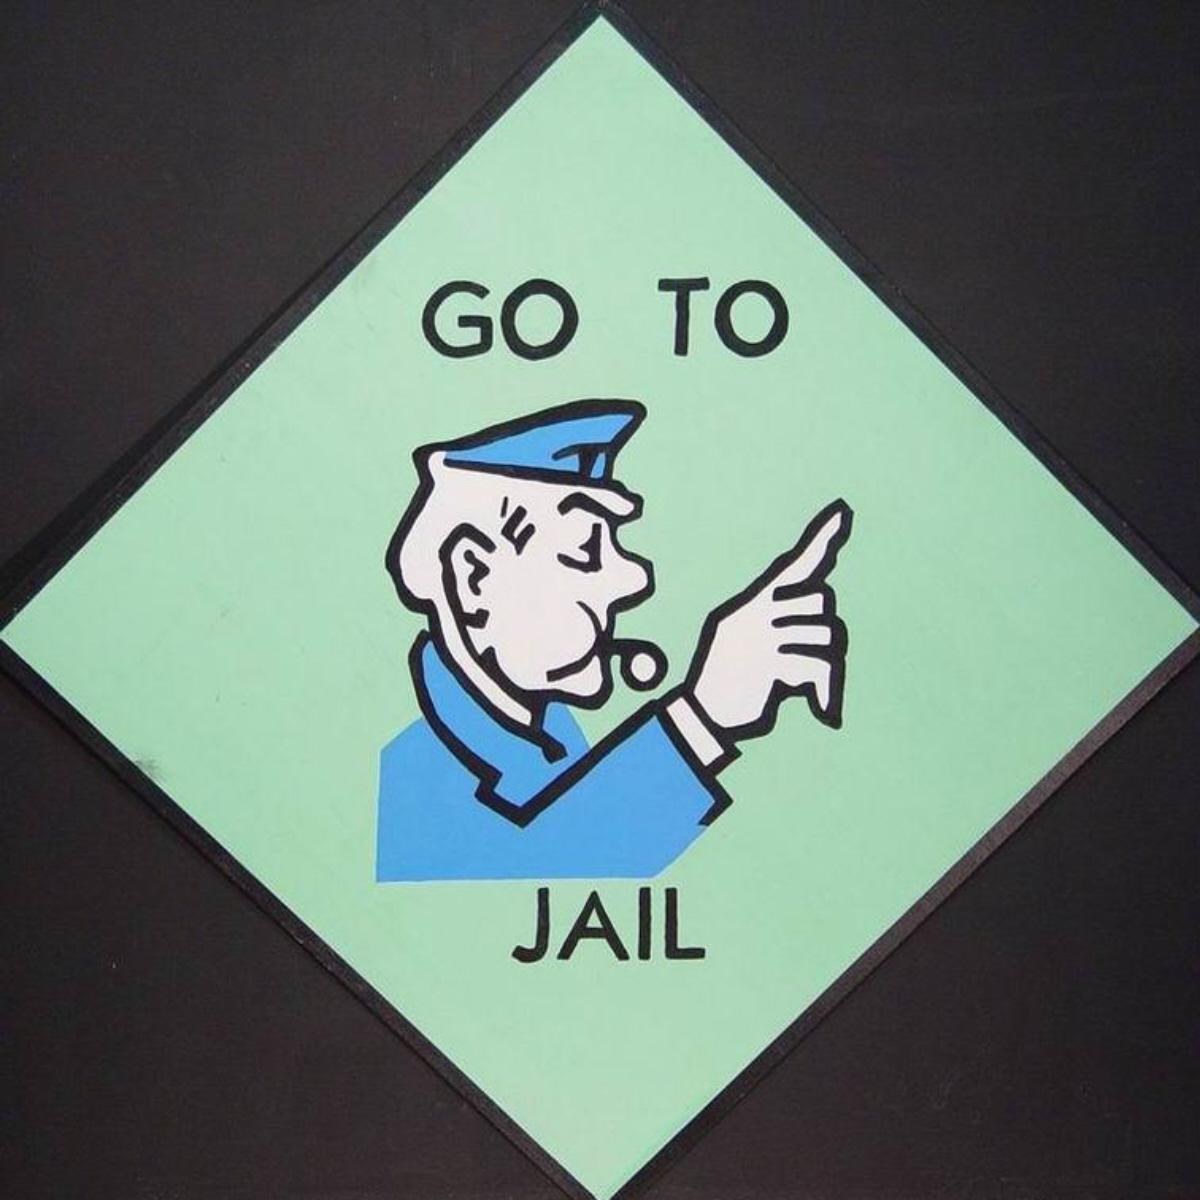 01 Go to Jail